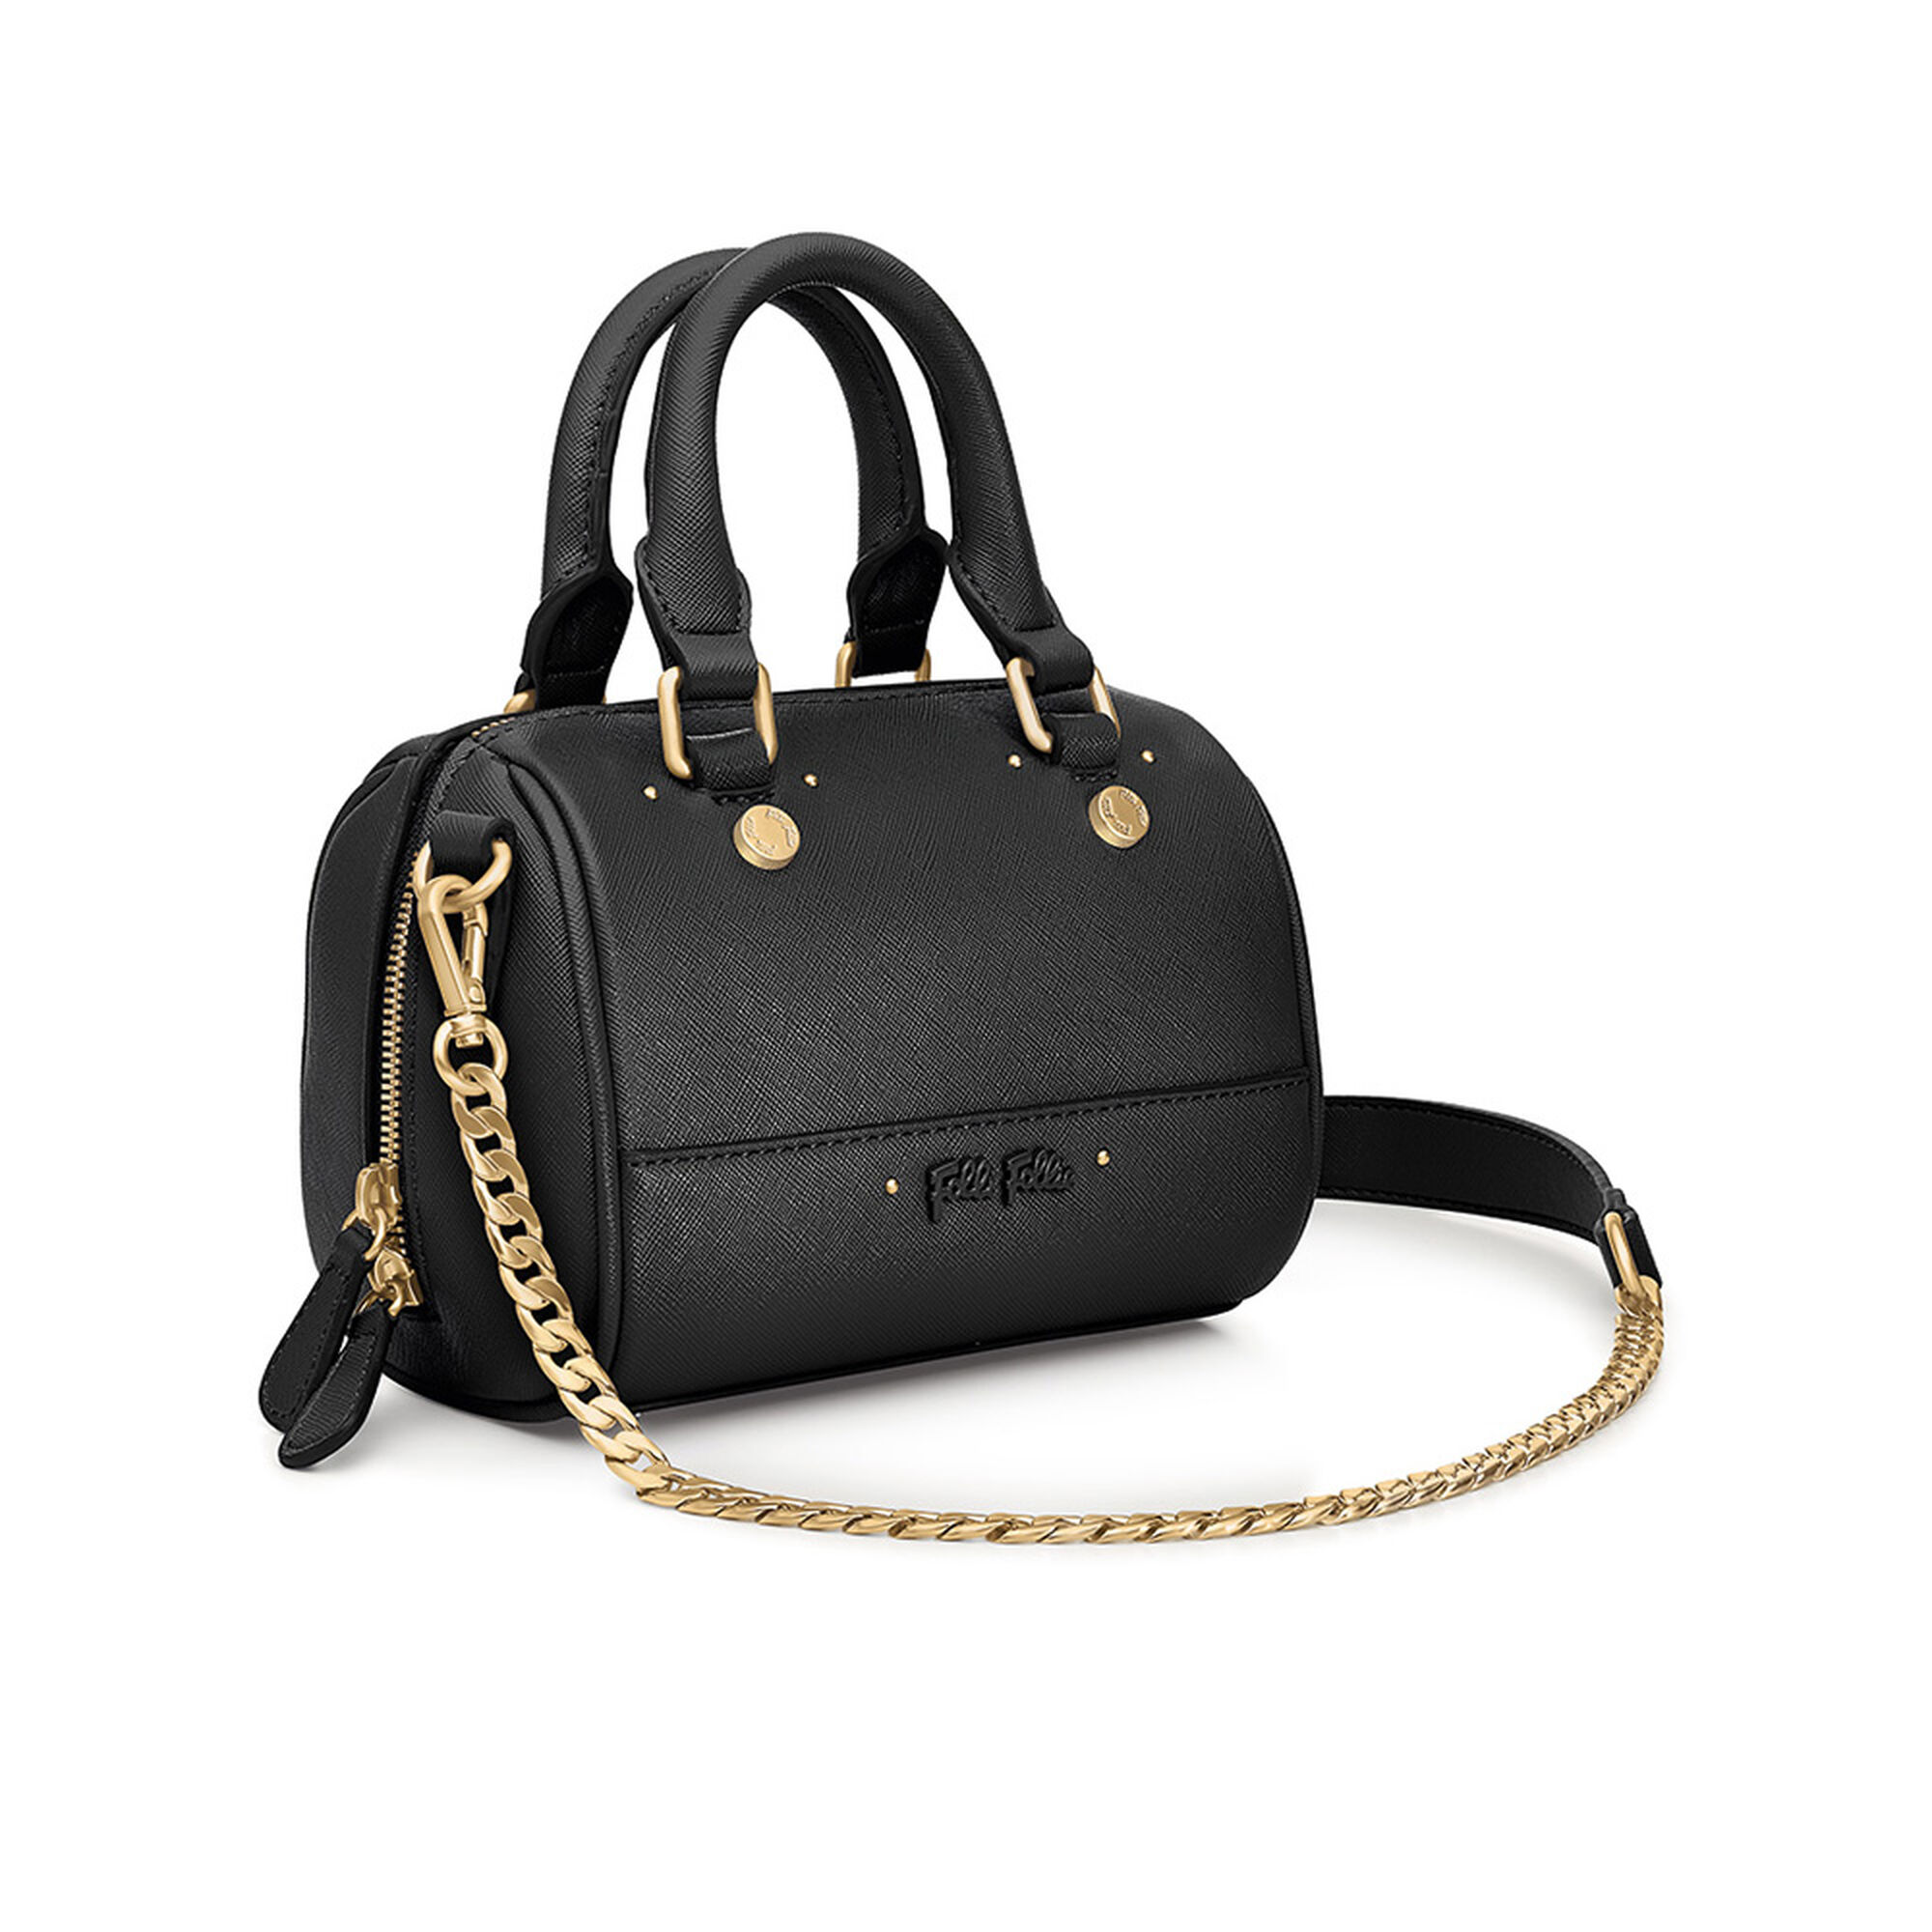 Black Chain Strap Handbag Handbags 2018